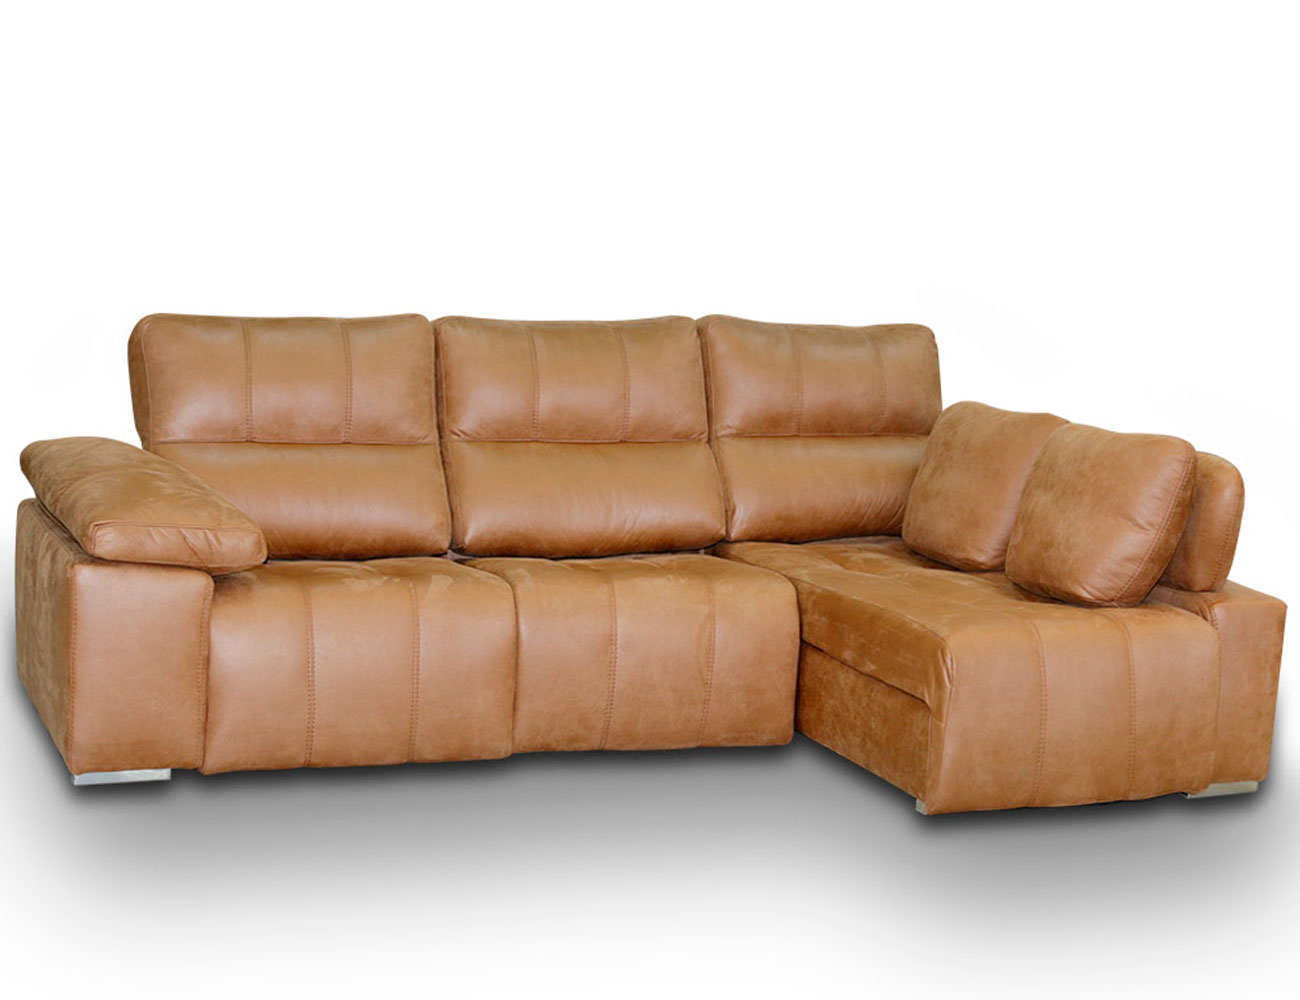 Sofa chaiselongue relax 2 motores anti manchas37